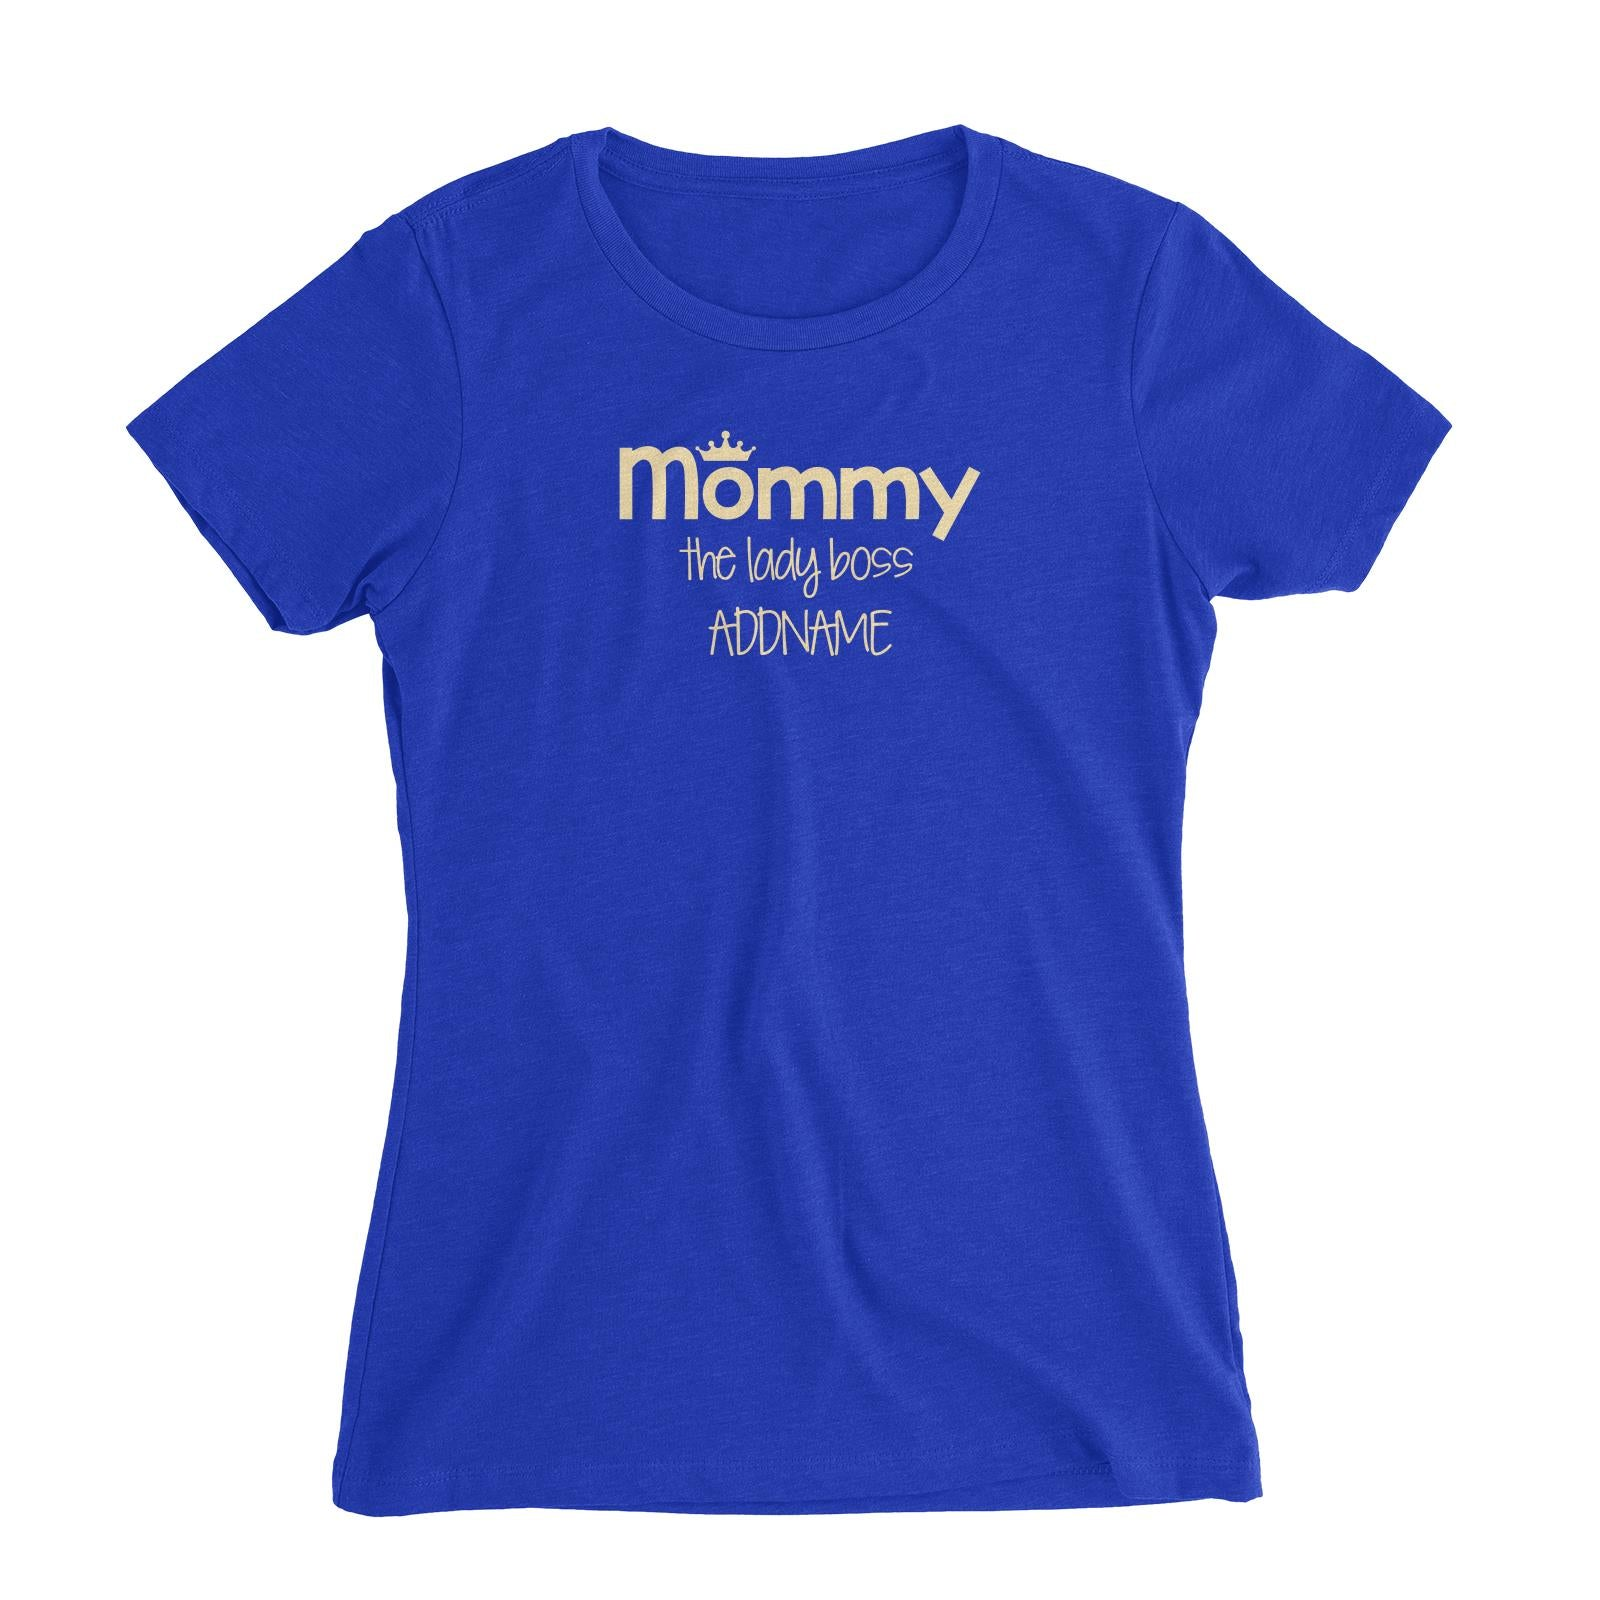 Mommy with Tiara The Lady Boss Women's Slim Fit T-Shirt